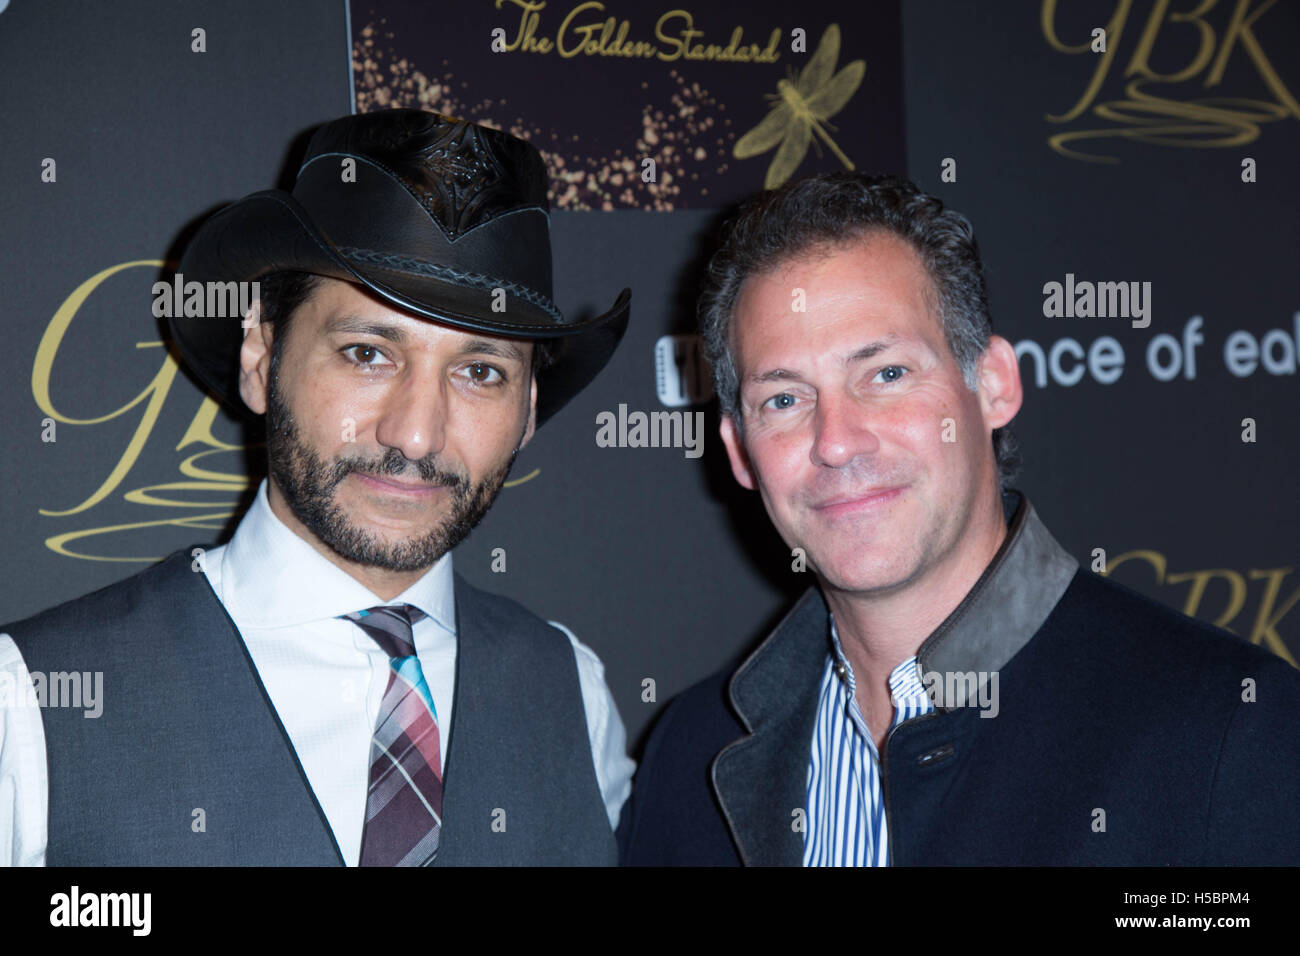 Cas Anvar and a guest attend 'GBK's Pre-Golden Globes Celebrity Gifting Suite' at W Hotel on January - Stock Image